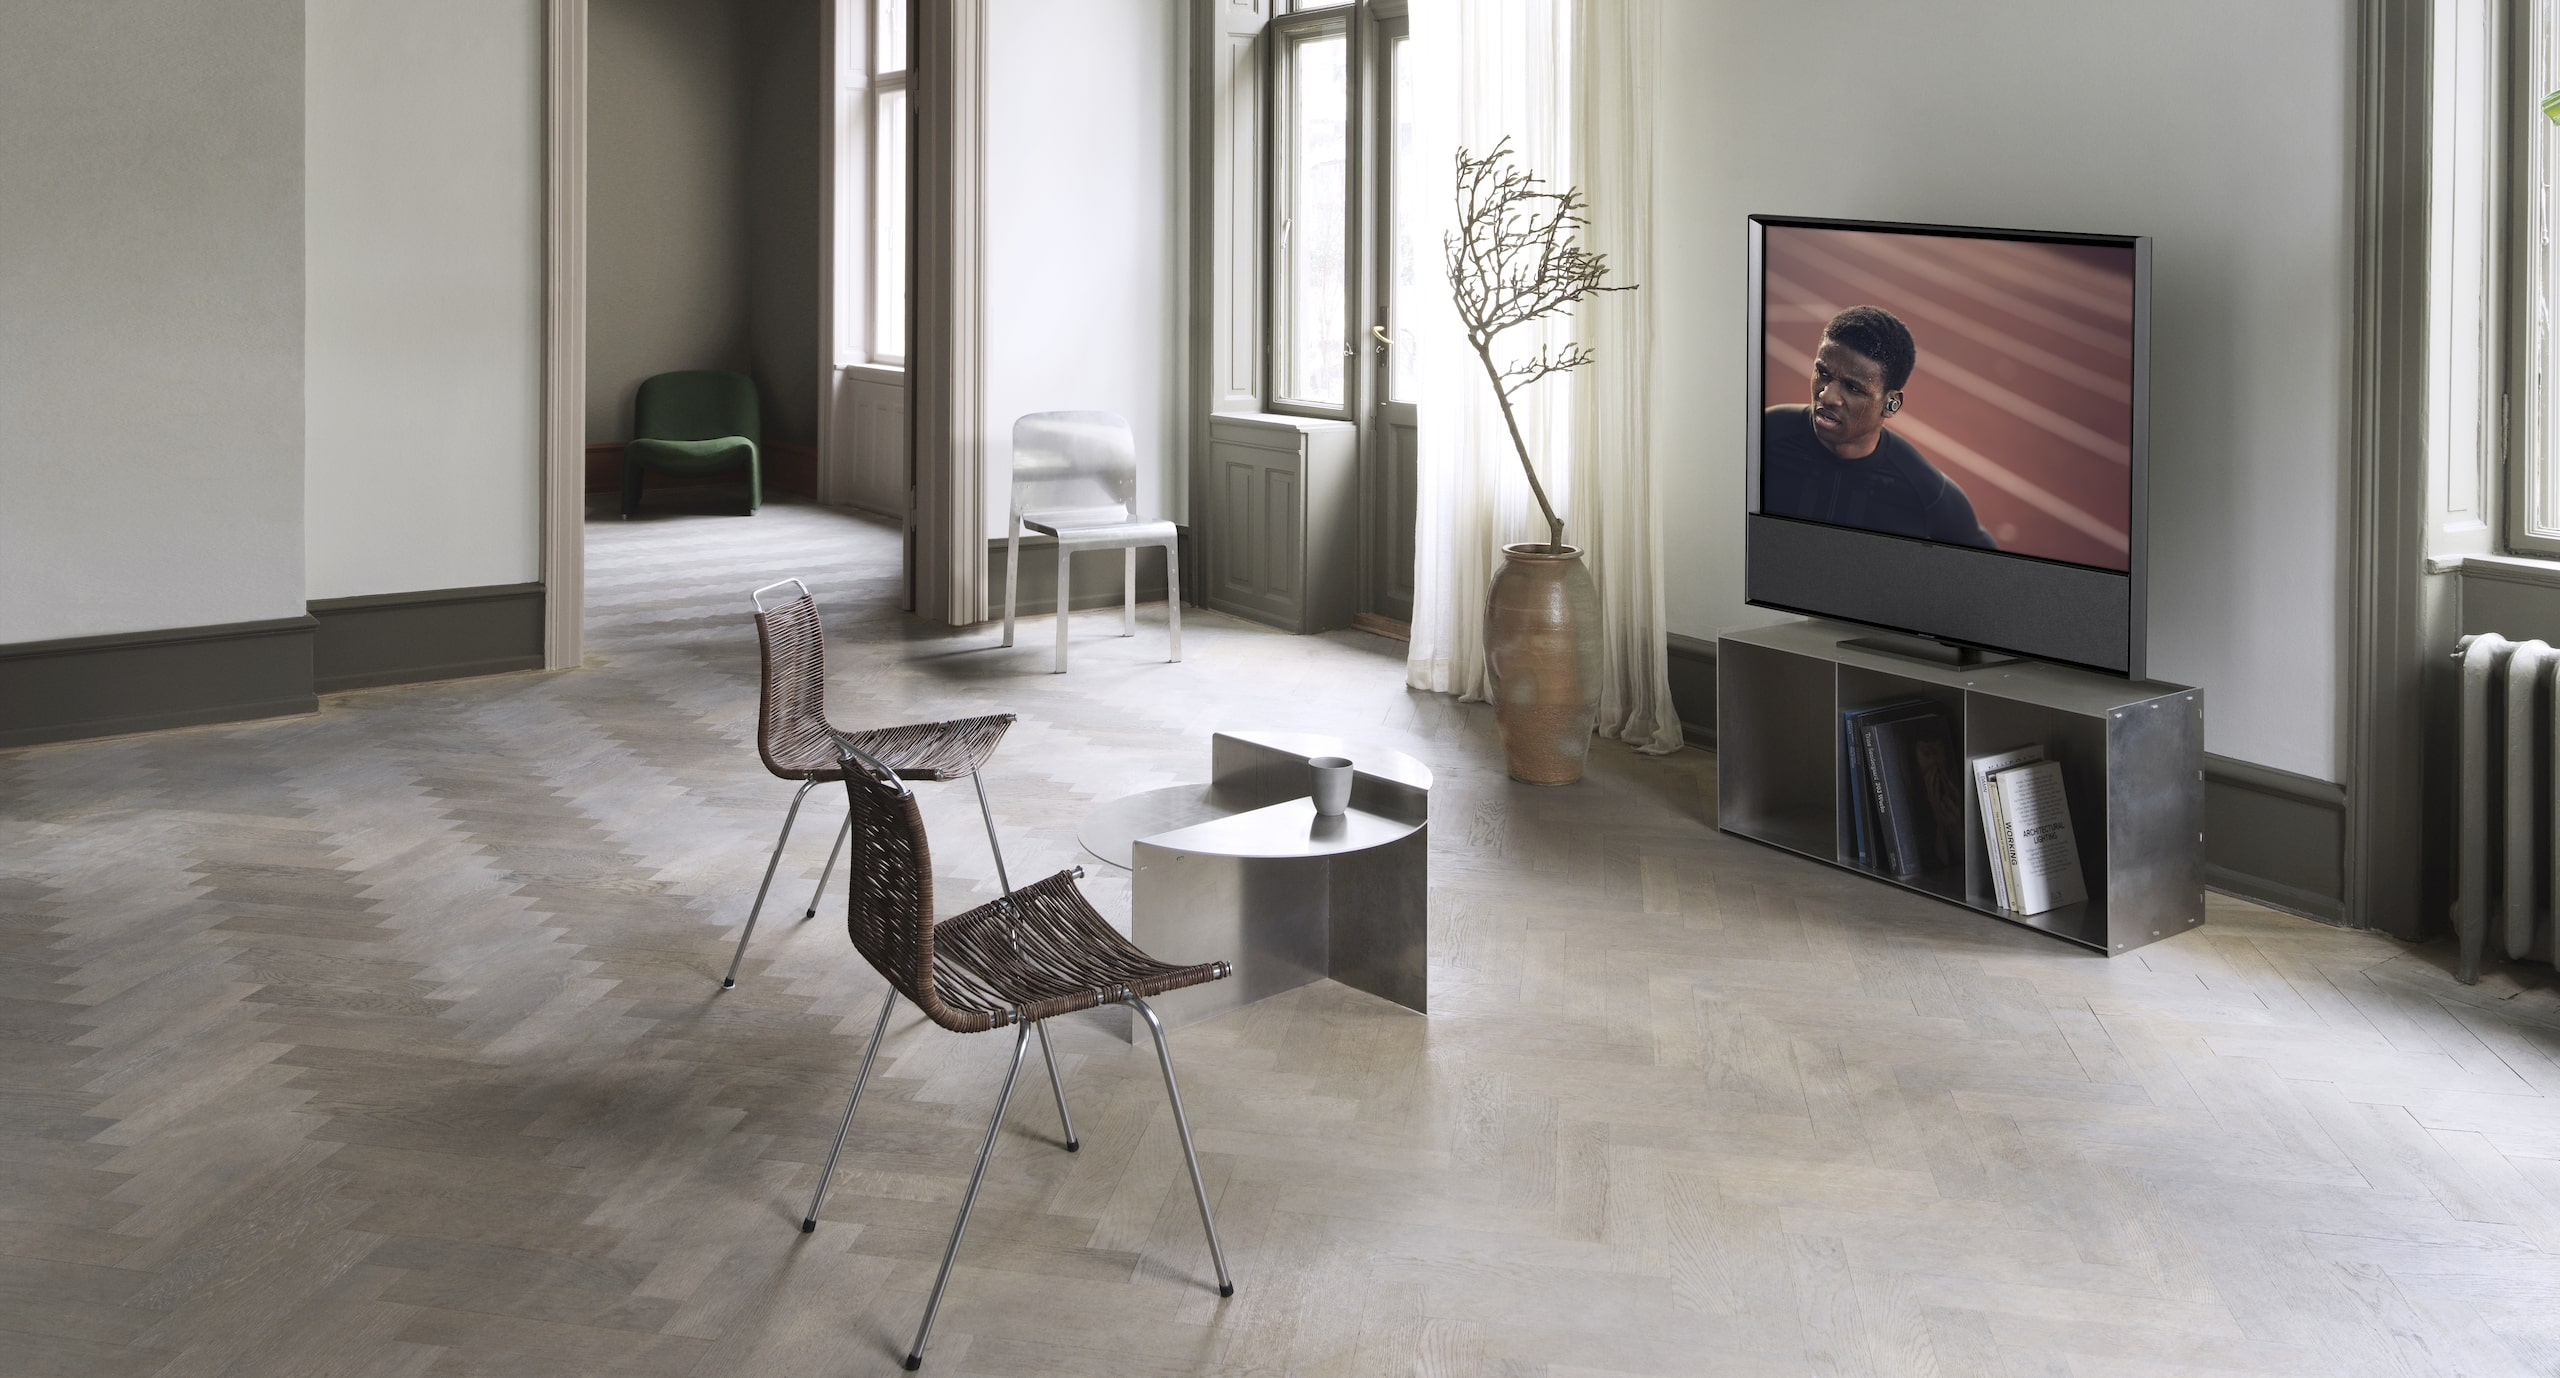 5 New Tech Items To Buy Now - Bang & Olufsen Beovision Contour